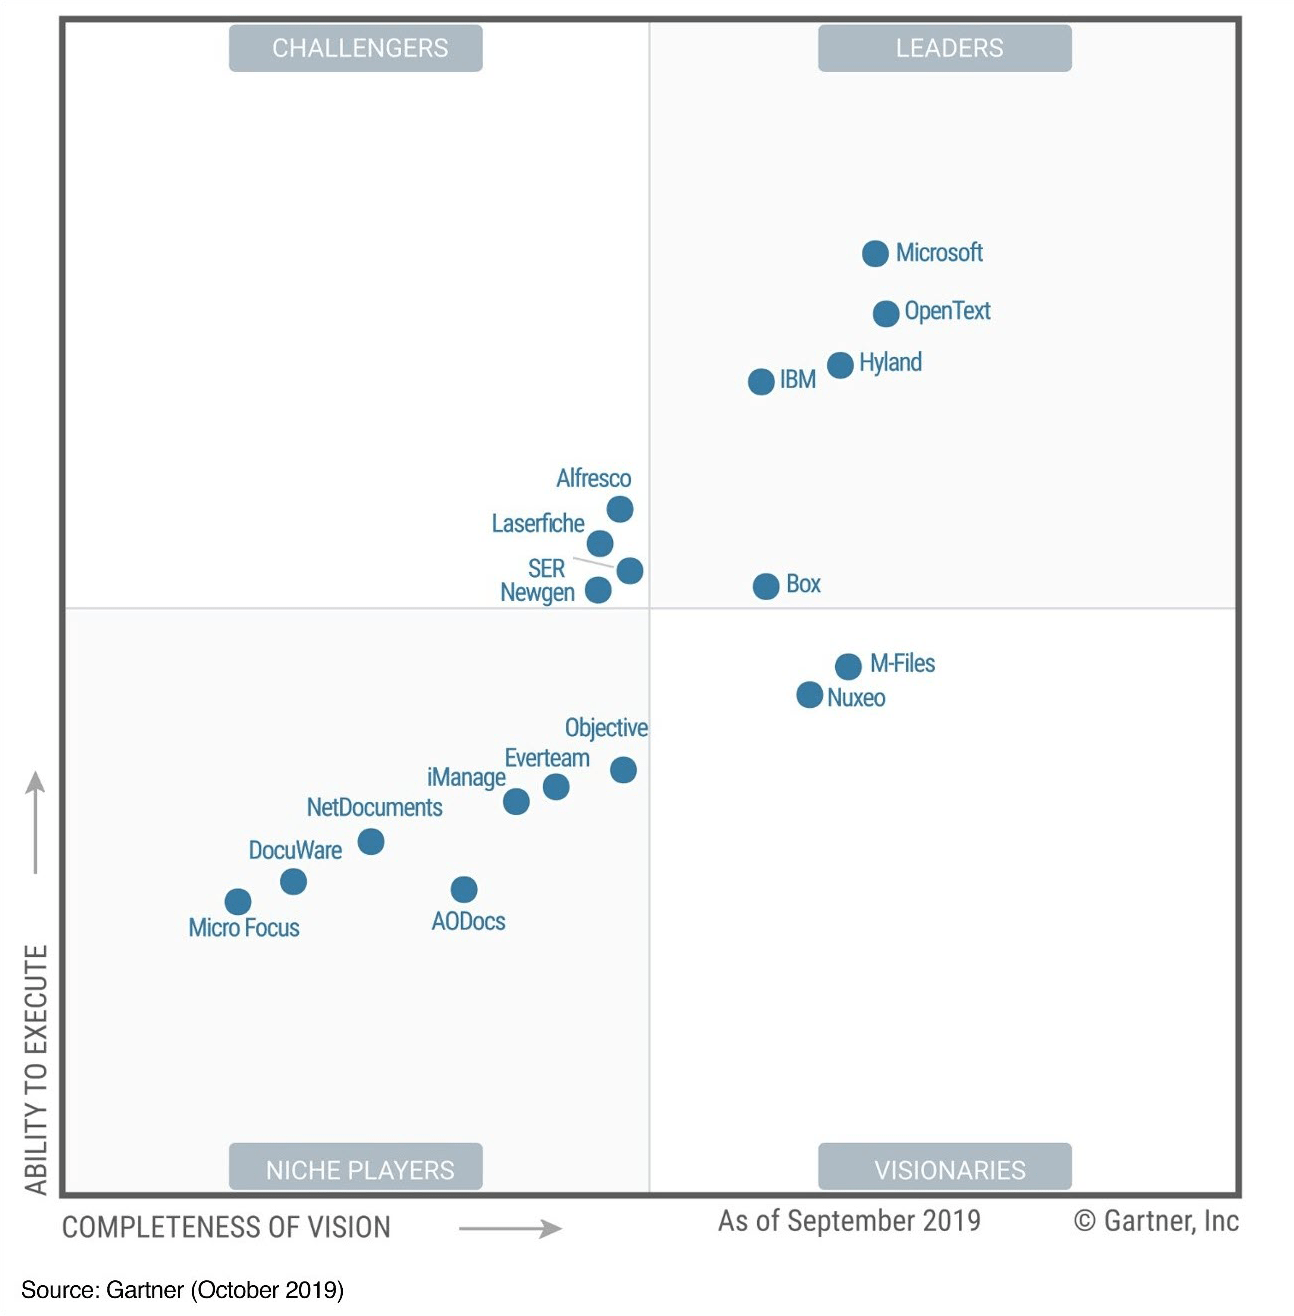 SharePoint, Microsoft and Gartner